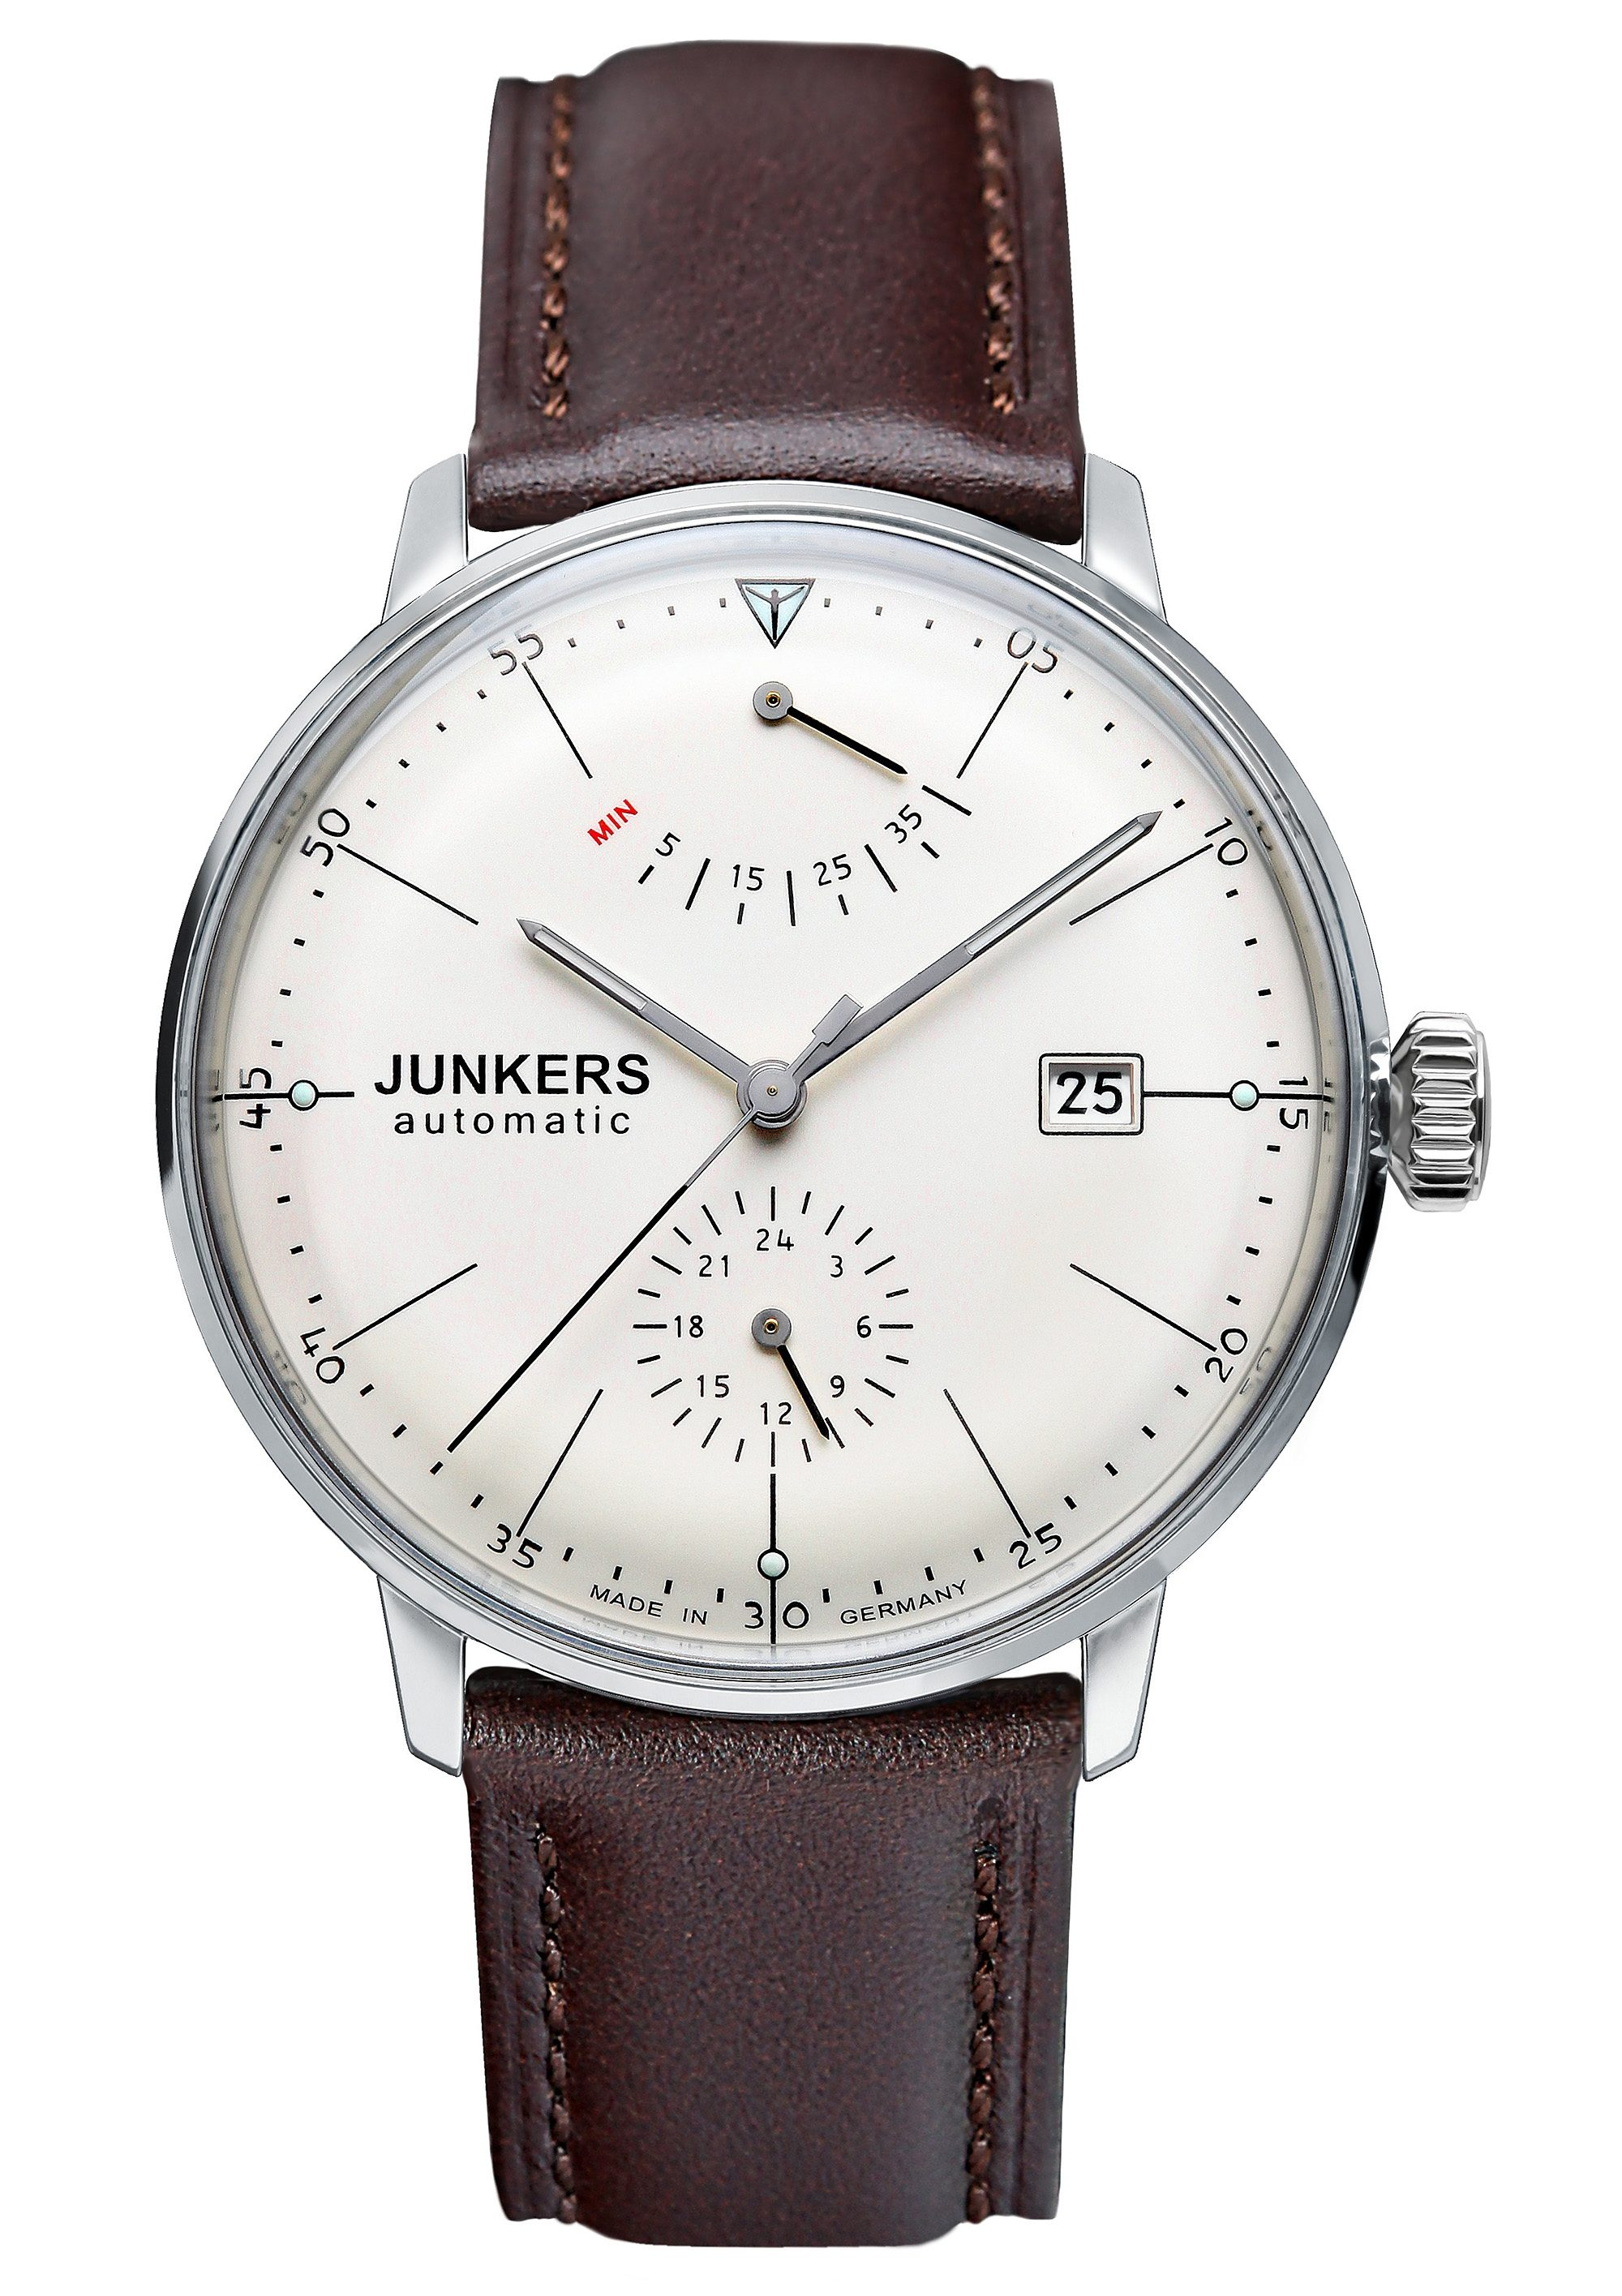 Junkers-Uhren Automatikuhr »BAUHAUS, 6060-5«, Made in Germany